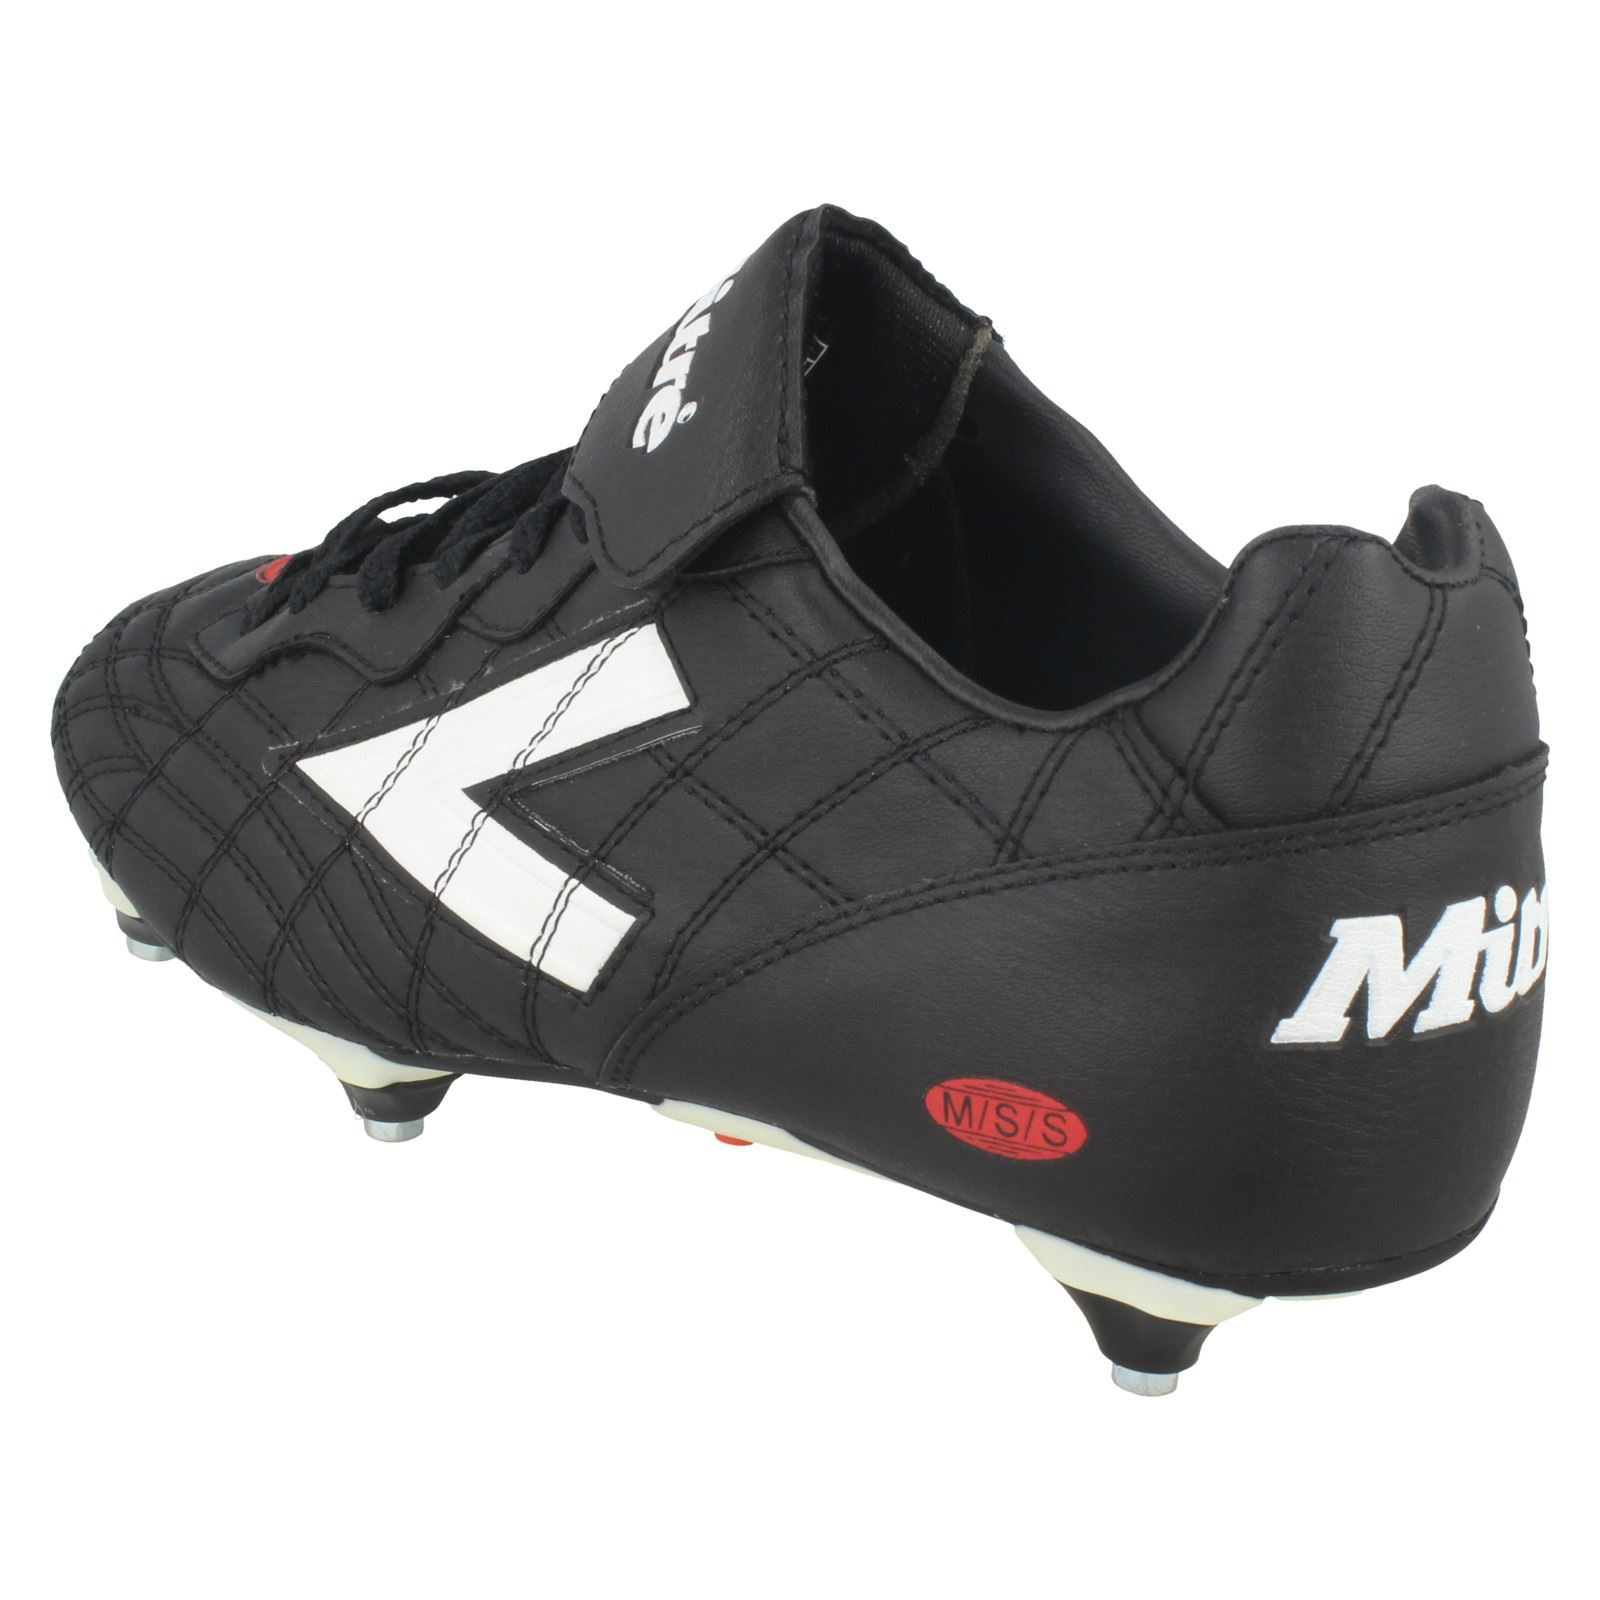 3de388487 Mitre-Boys-Football-Boots-Meteor thumbnail 4